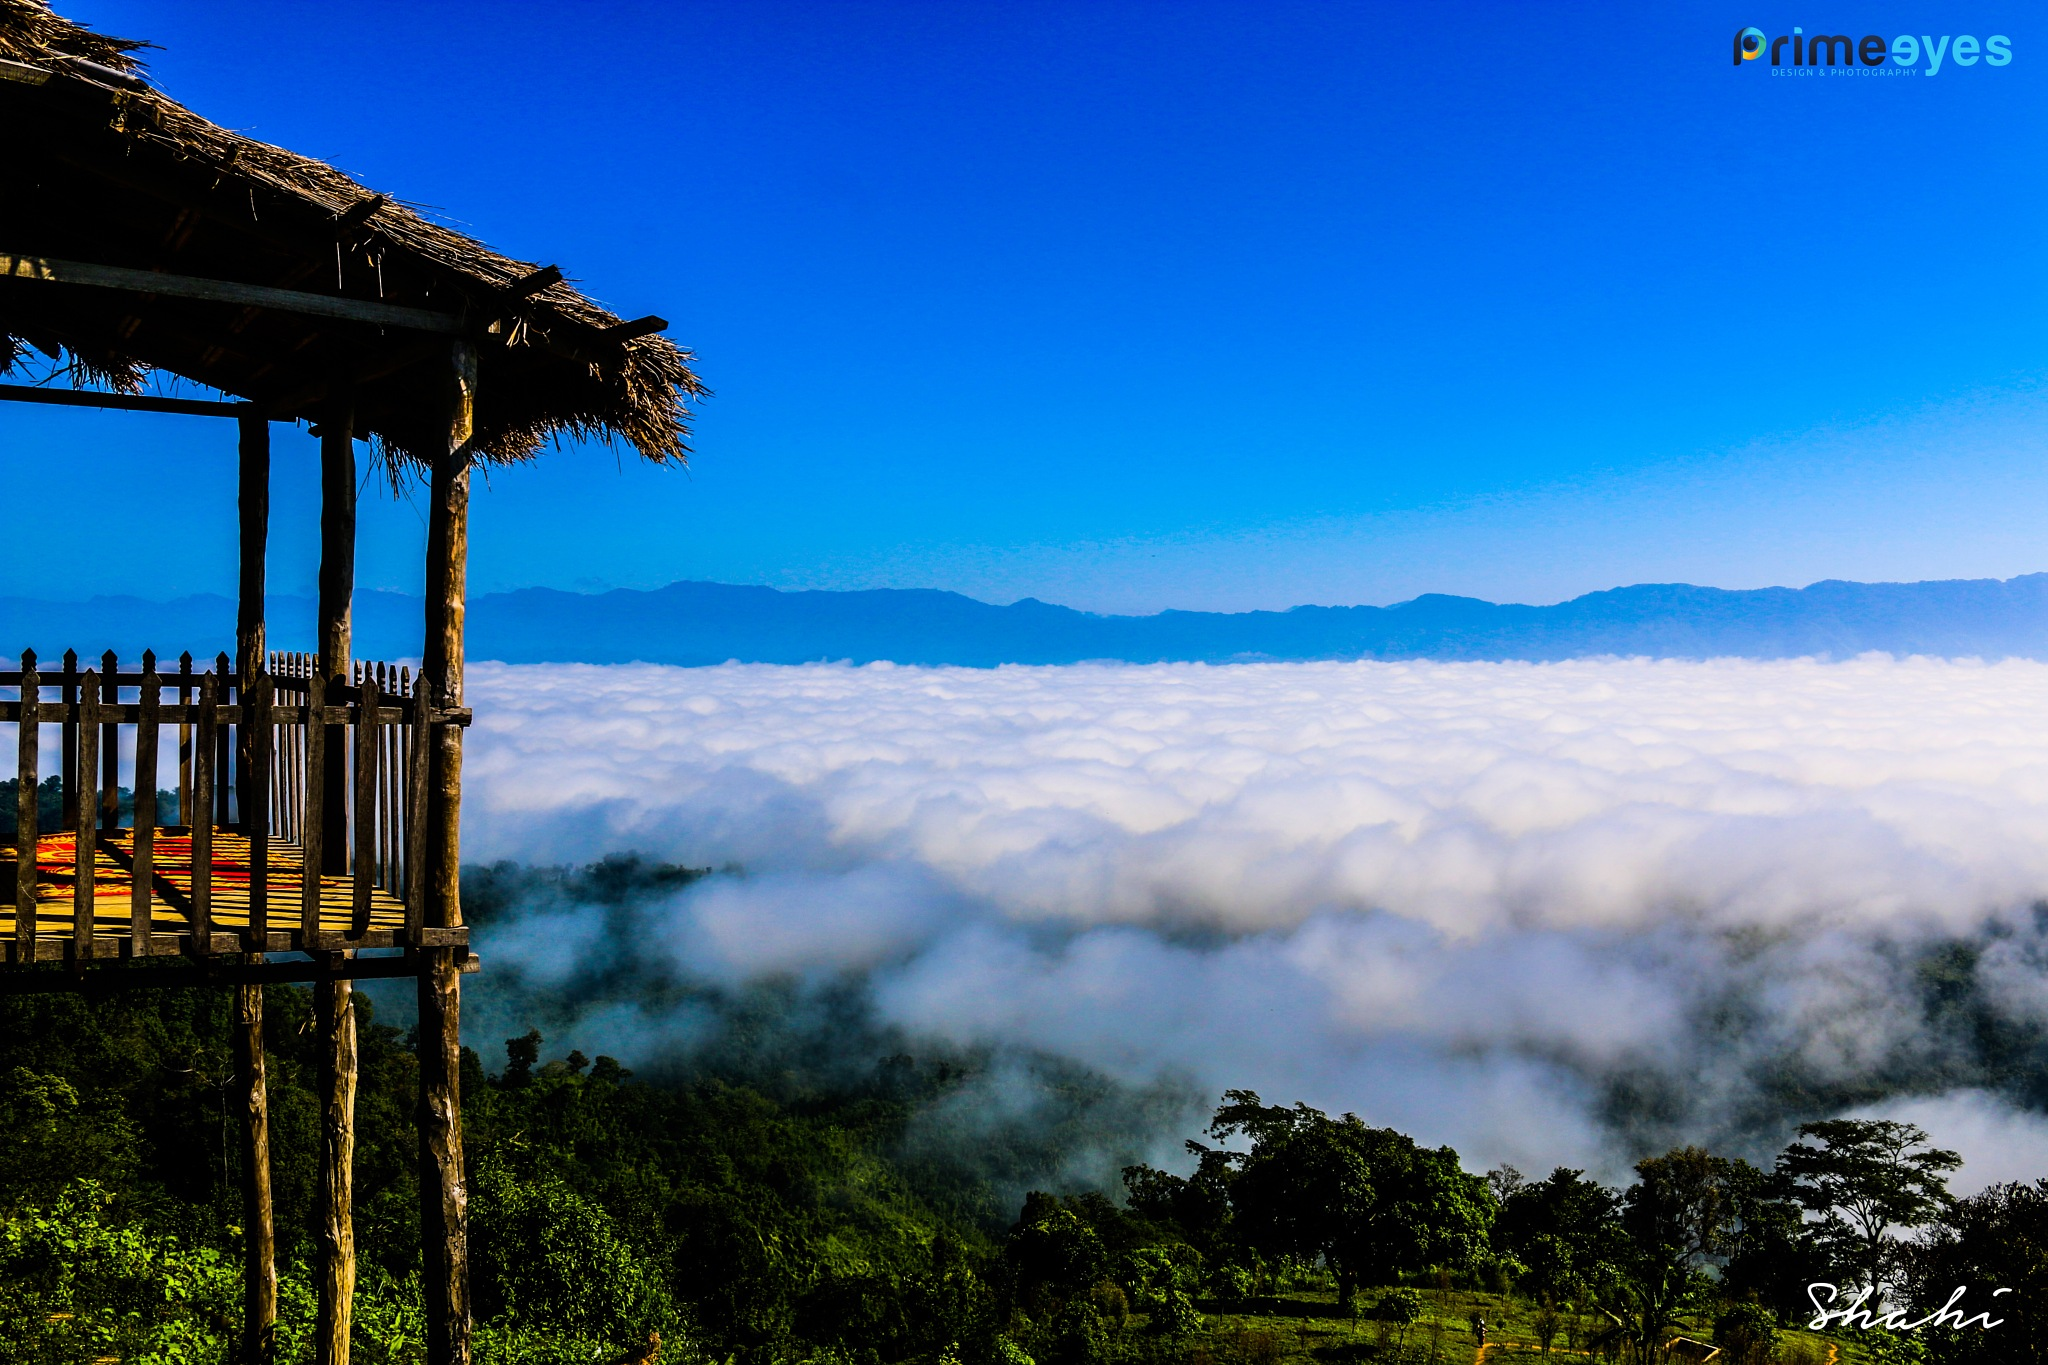 Above the Clouds by Md Shahidullah